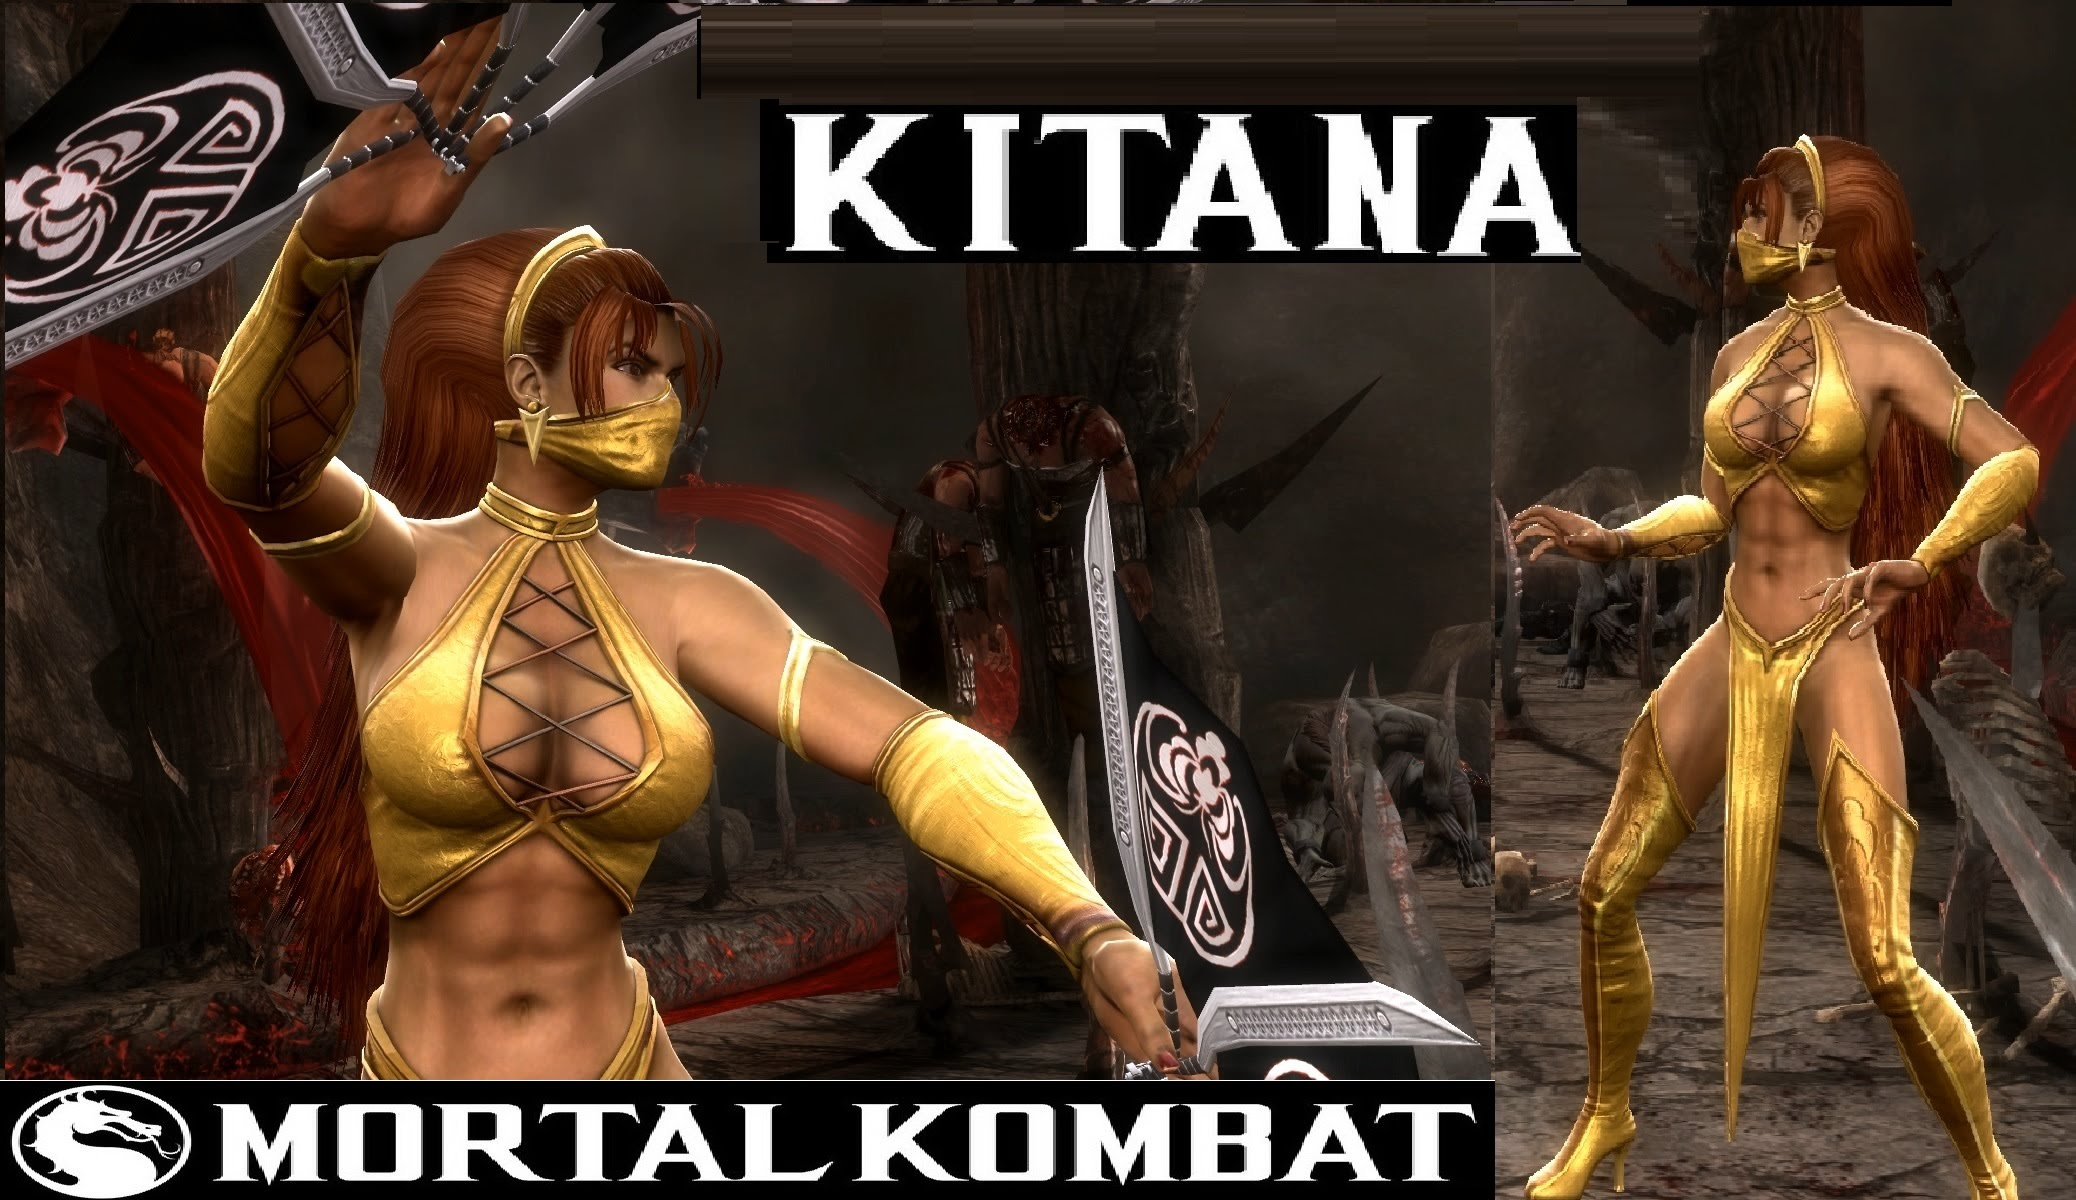 Mk9 ryona pictures fucks videos